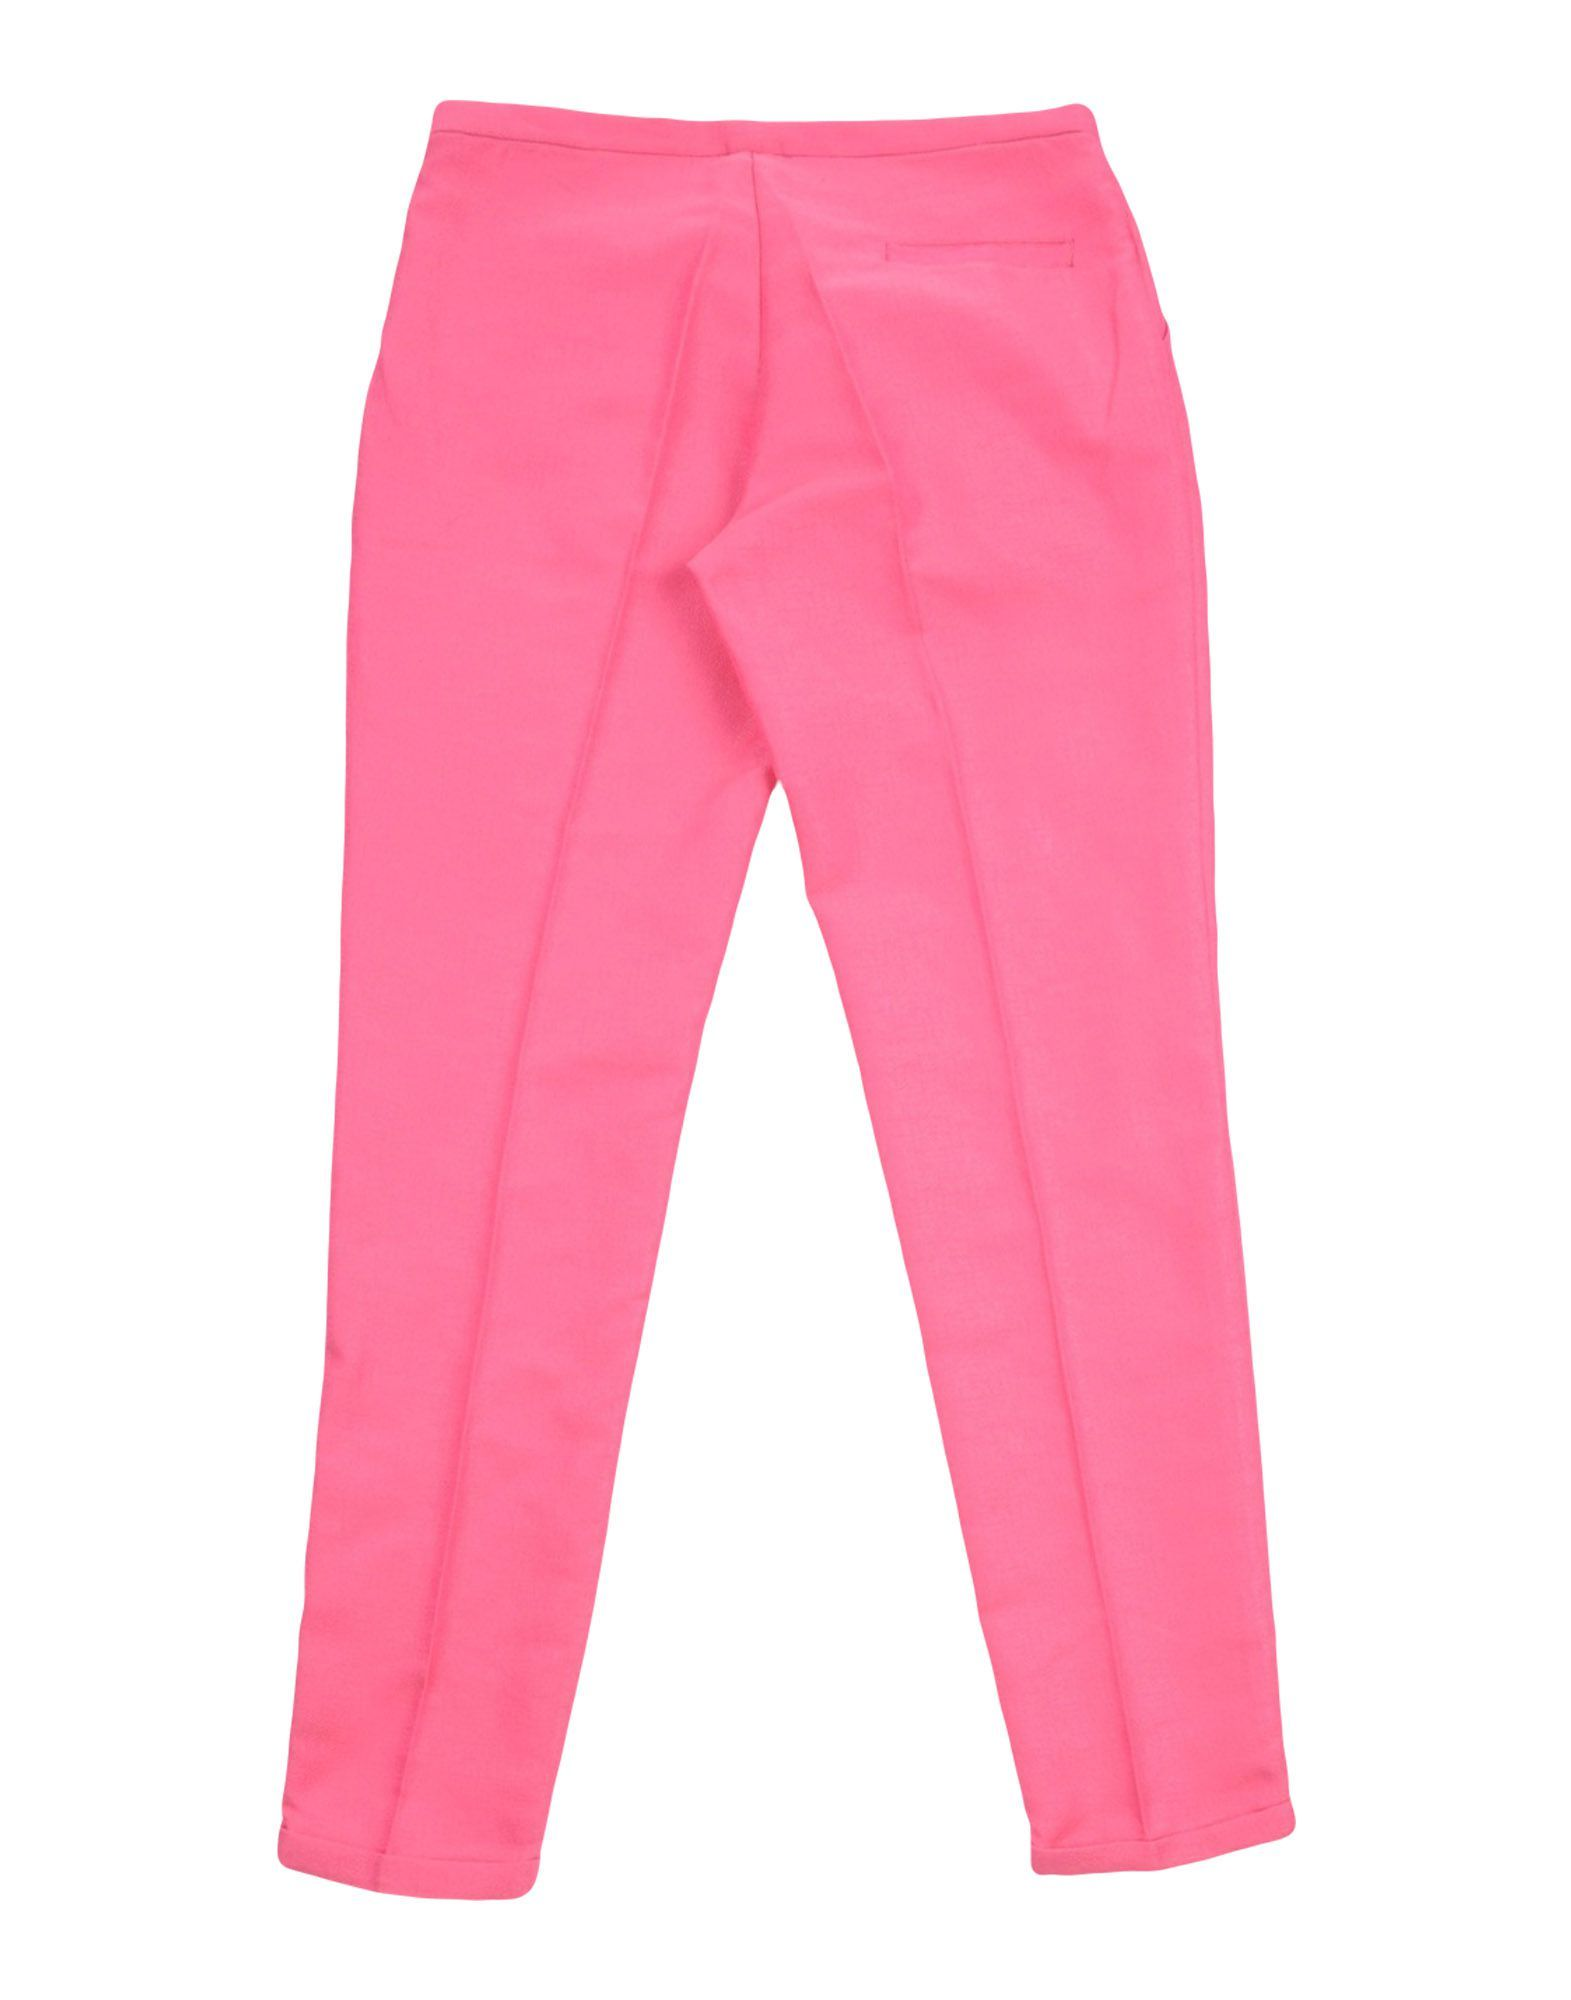 TROUSERS Ki6? Pretty Fuchsia Girl Polyester